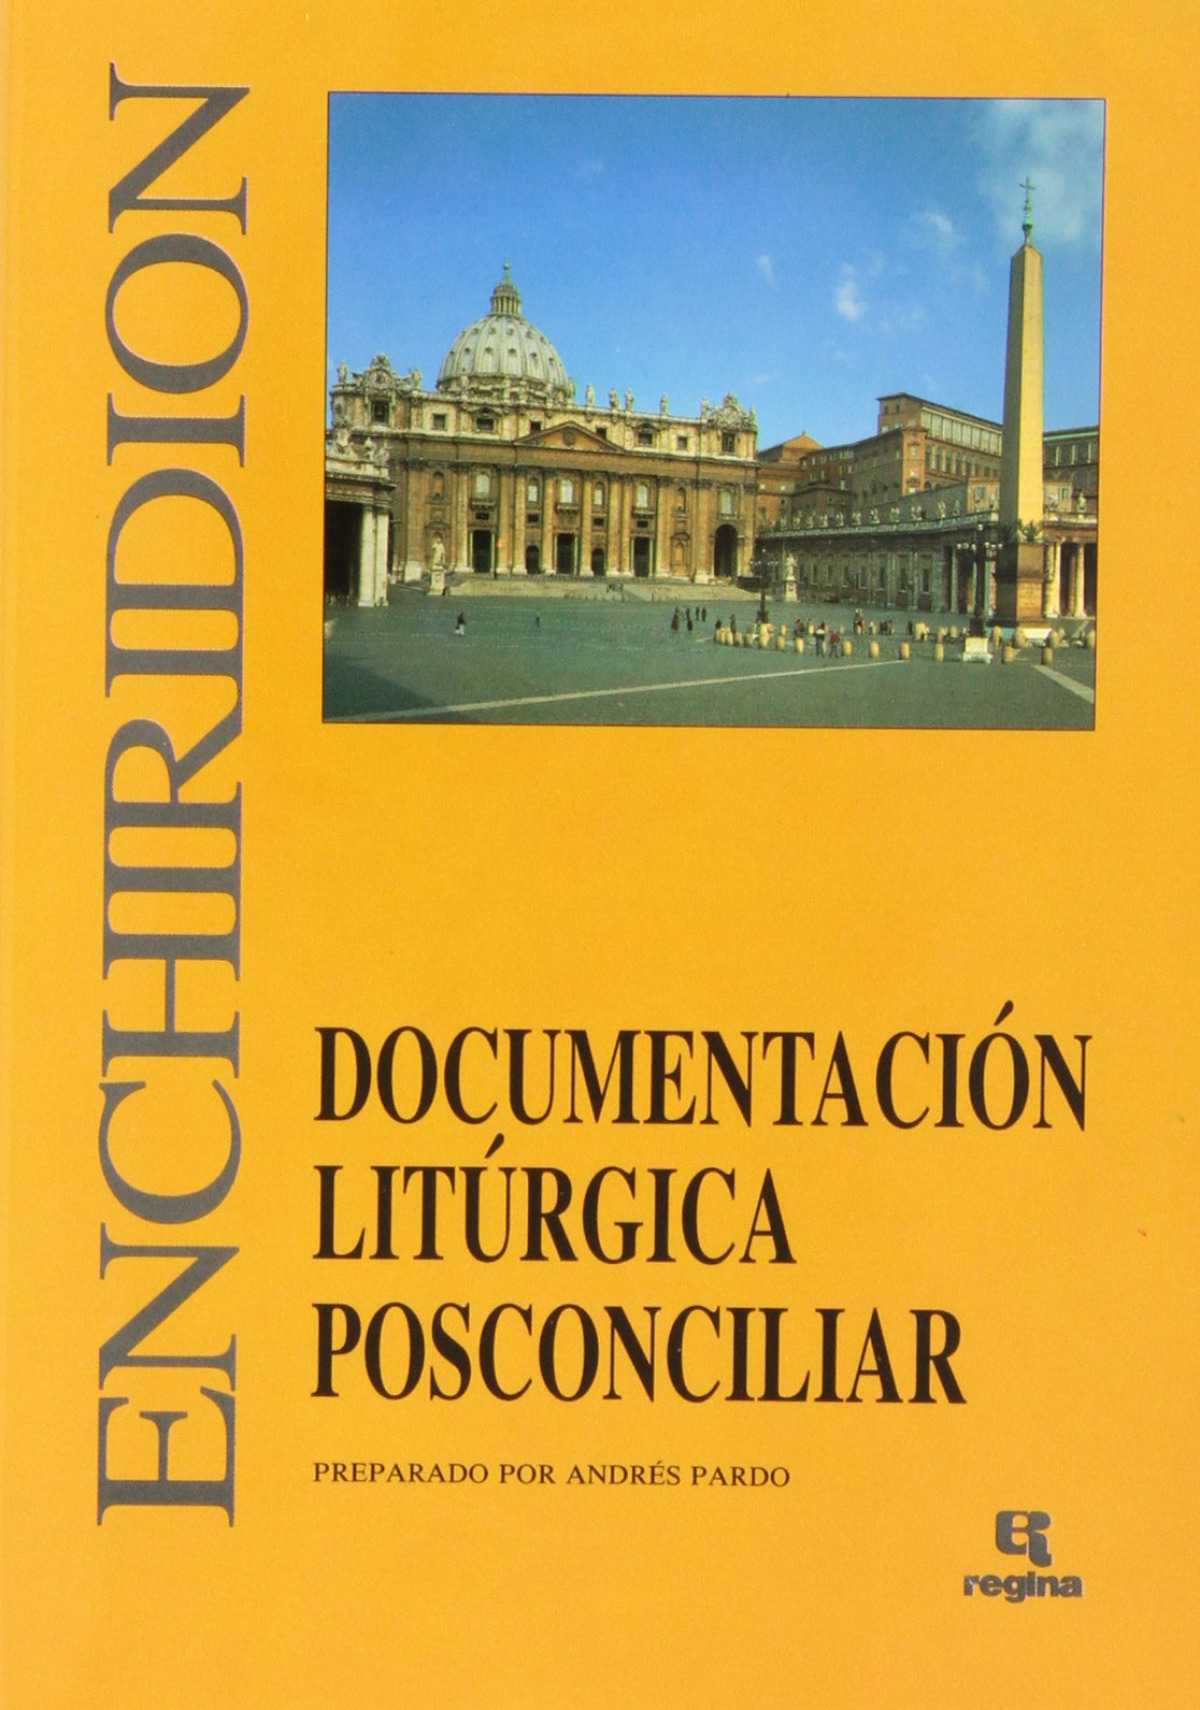 DOCUMENTACION LITURGICA POSCONCILIAR